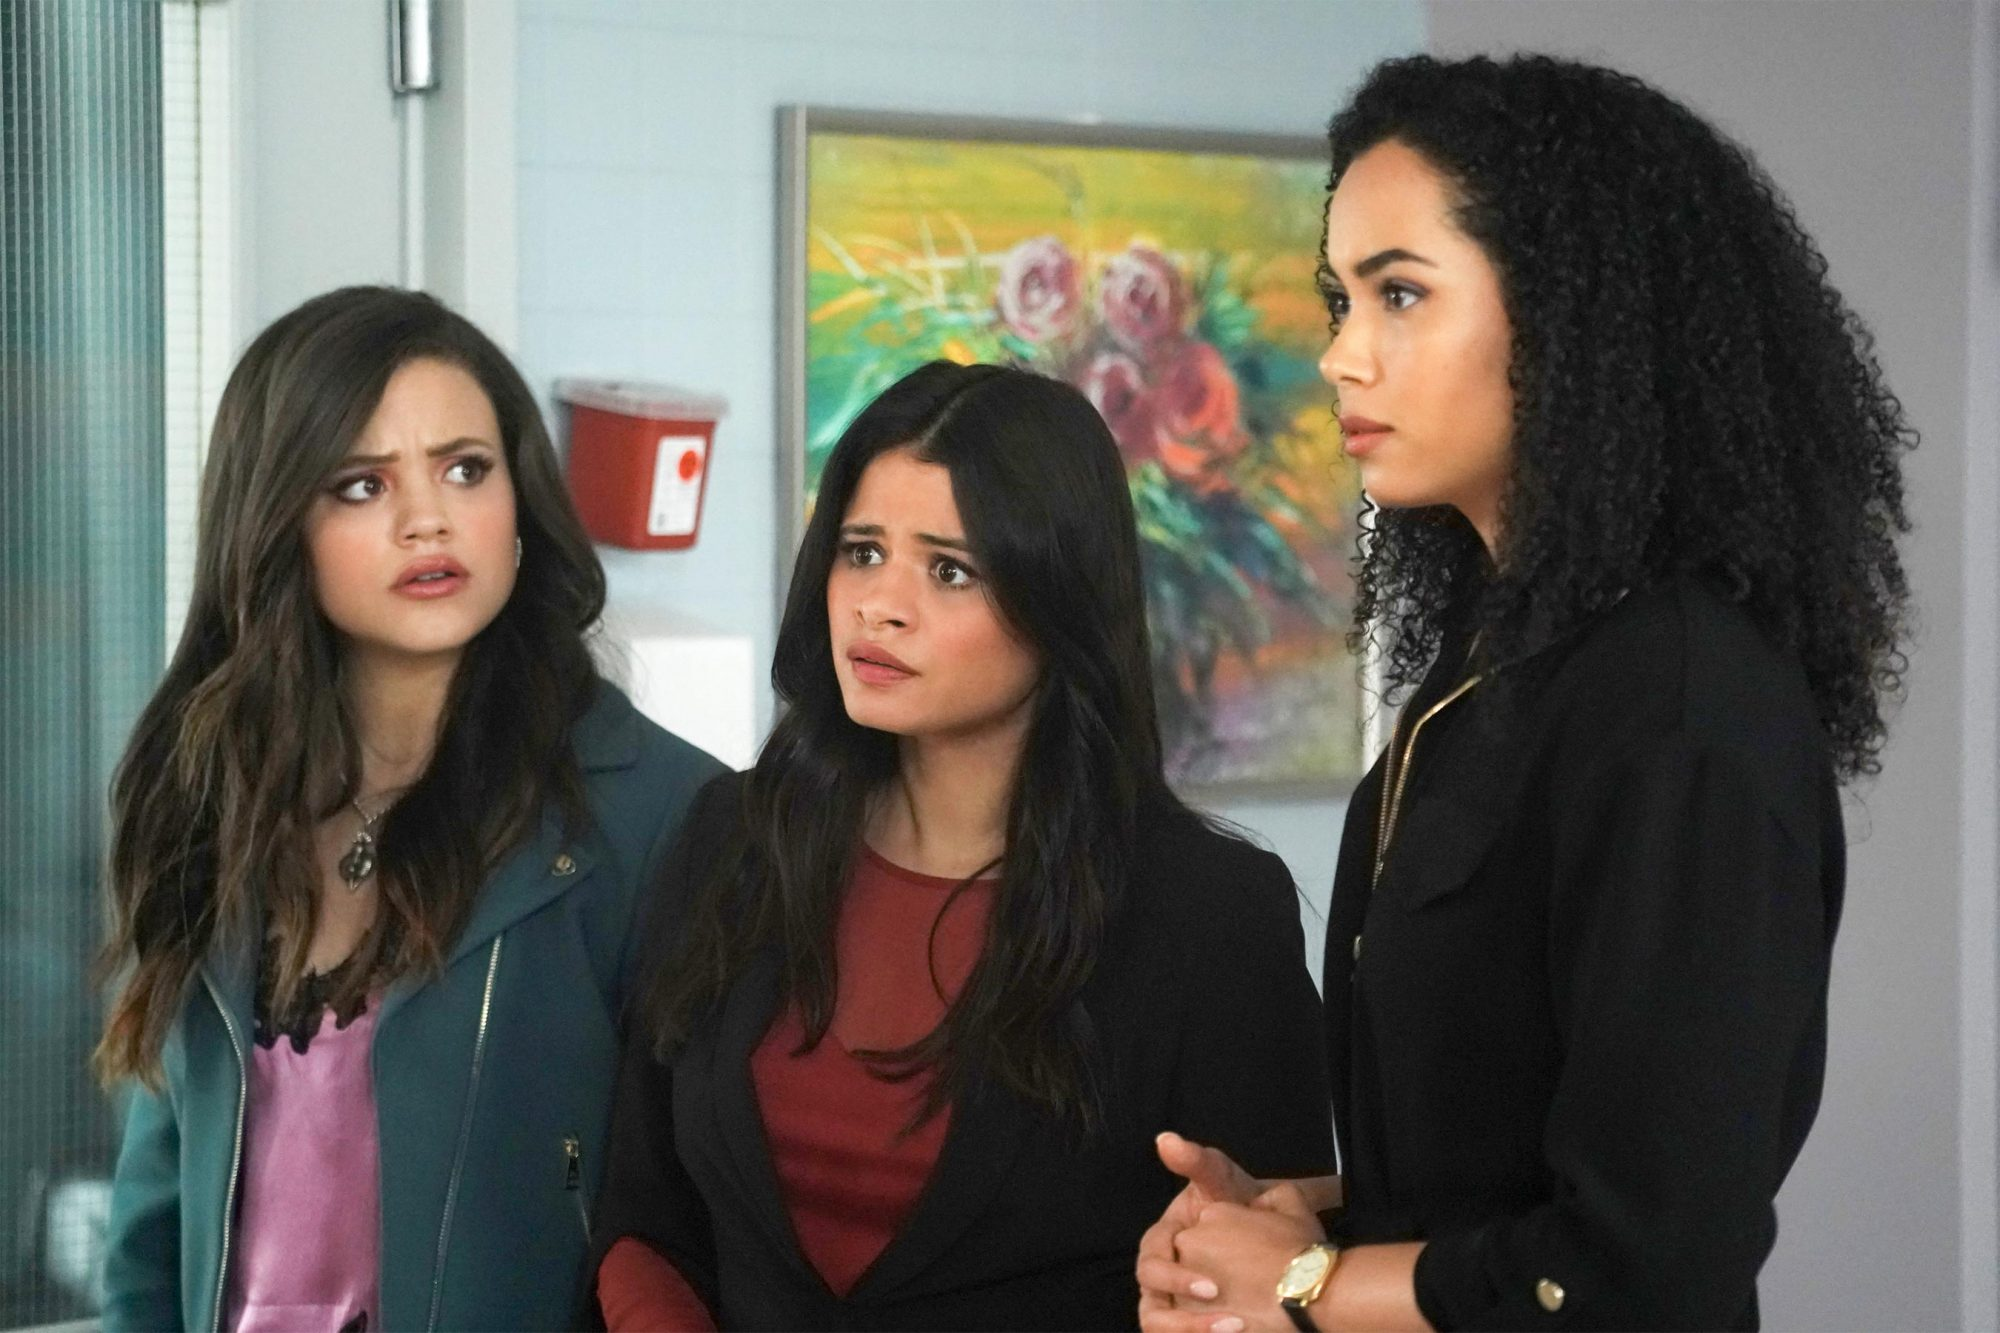 """Charmed -- """"Red Rain"""" -- Image Number: CMD121b_0042.jpg -- Pictured (L-R): Sarah Jeffery as Maggie, Melonie Diaz as Mel and Madeleine Mantock as Macy -- Photo: Shane Harvey/The CW -- © 2019 The CW Network, LLC. All rights reserved."""